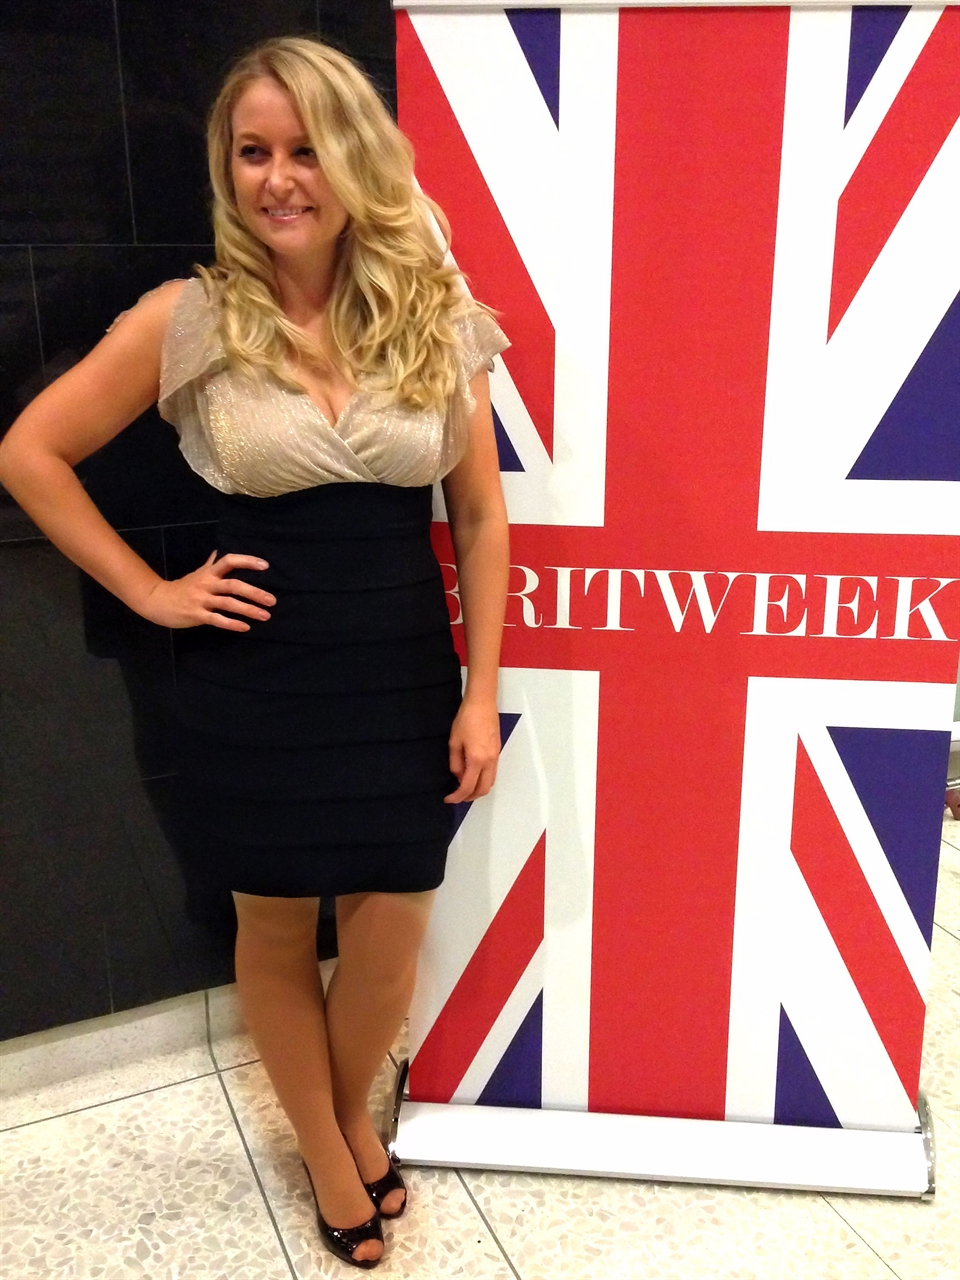 Janine attends one of Brit Weeks events at Filmmaker event taking place in Los Angeles.